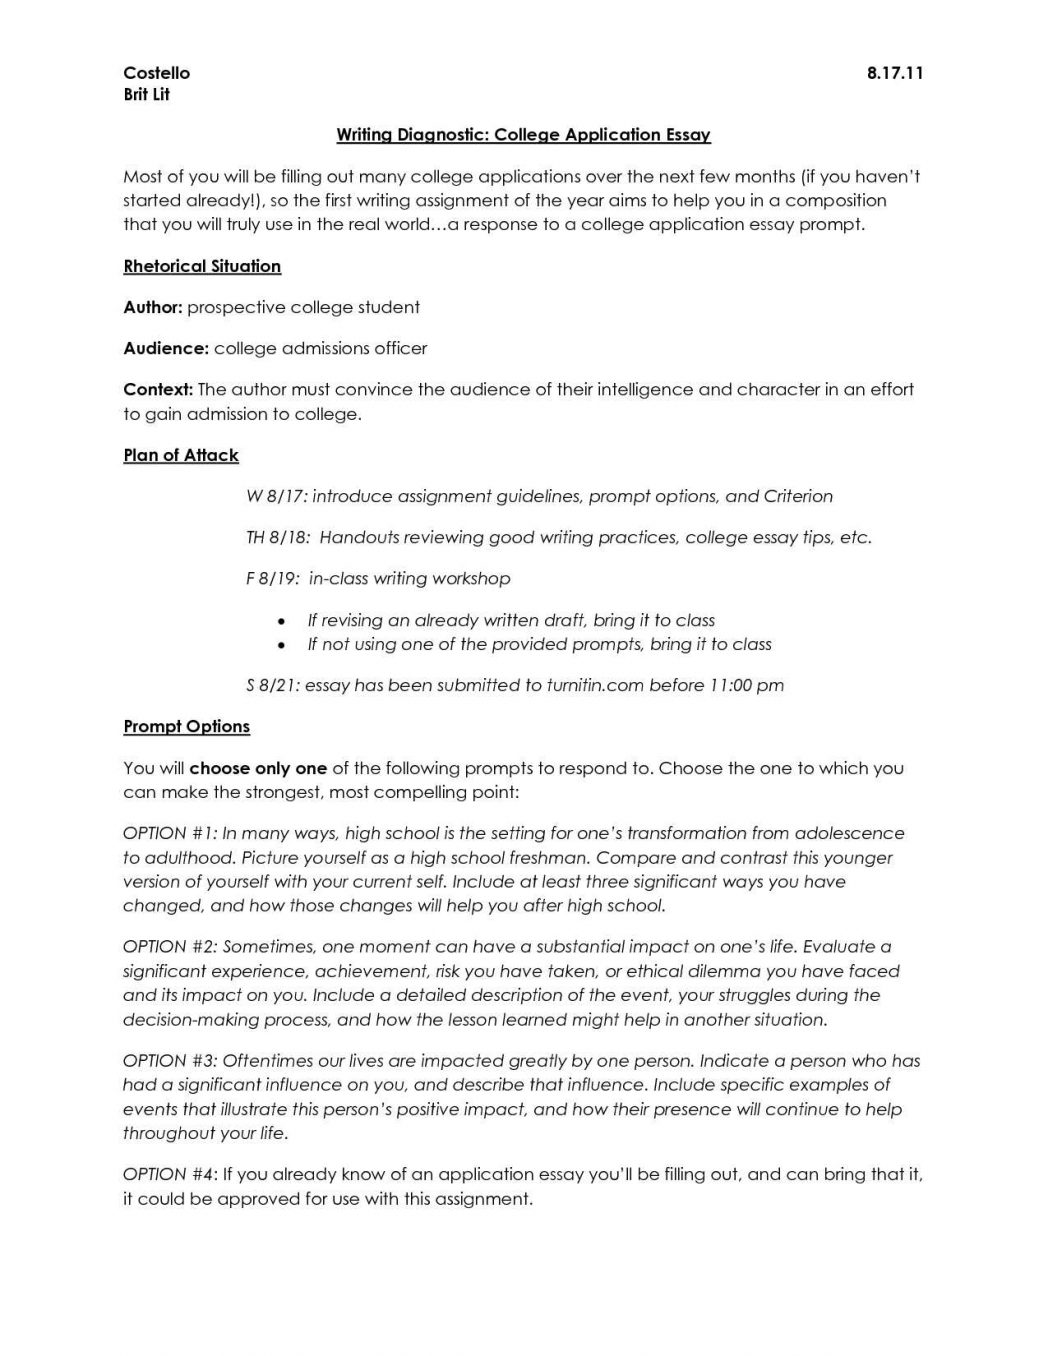 008 College Application Essay Topics Example Samples Of Essays For Admissions 626reserve Com Owhsv Question Examples Cliche Prompt To Avoid Rutgers Dreaded Admission Prompts 2016 Applications Full